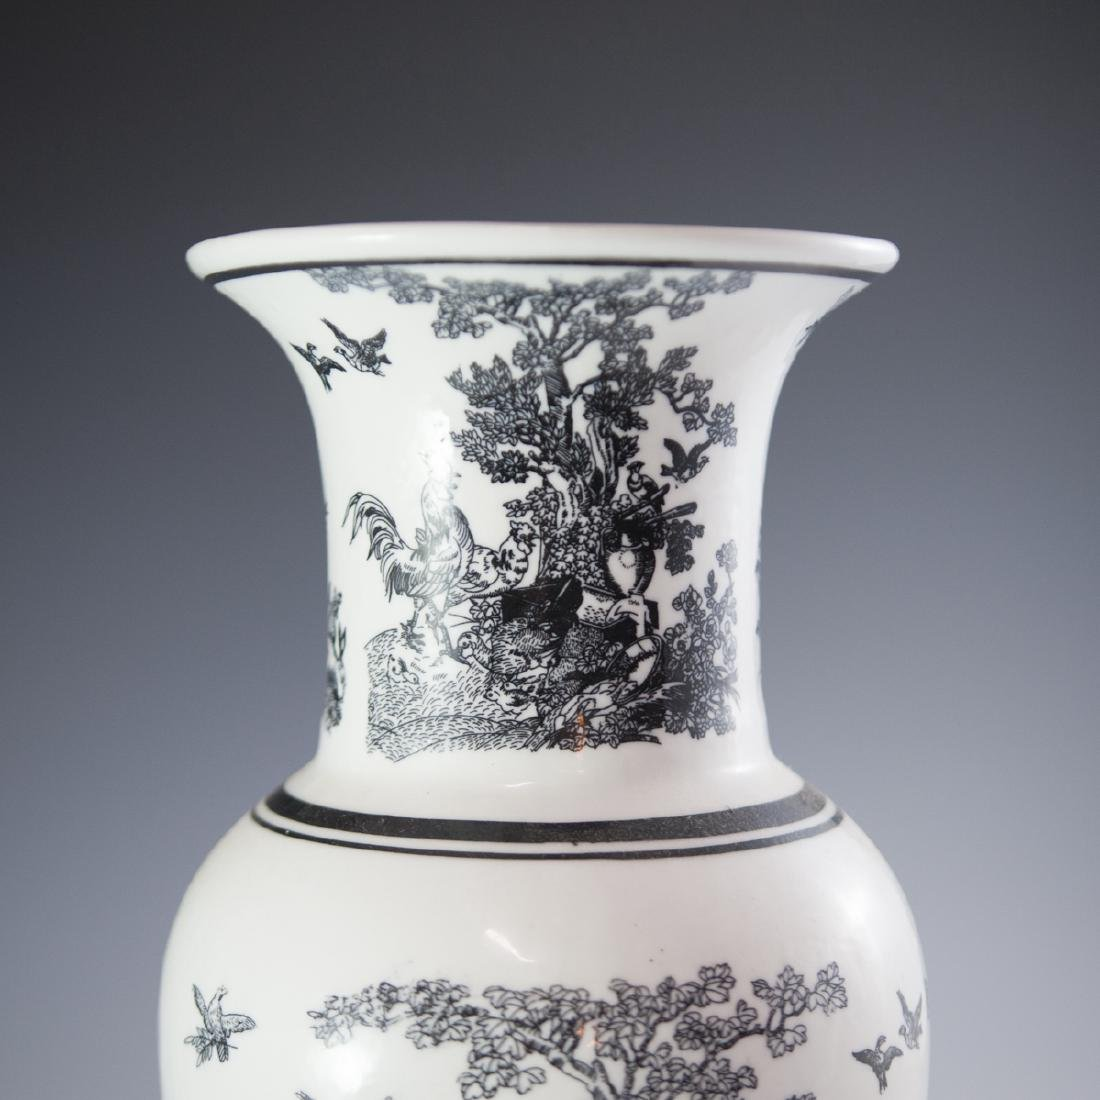 Decorative Chinese Porcelain Vase - 2